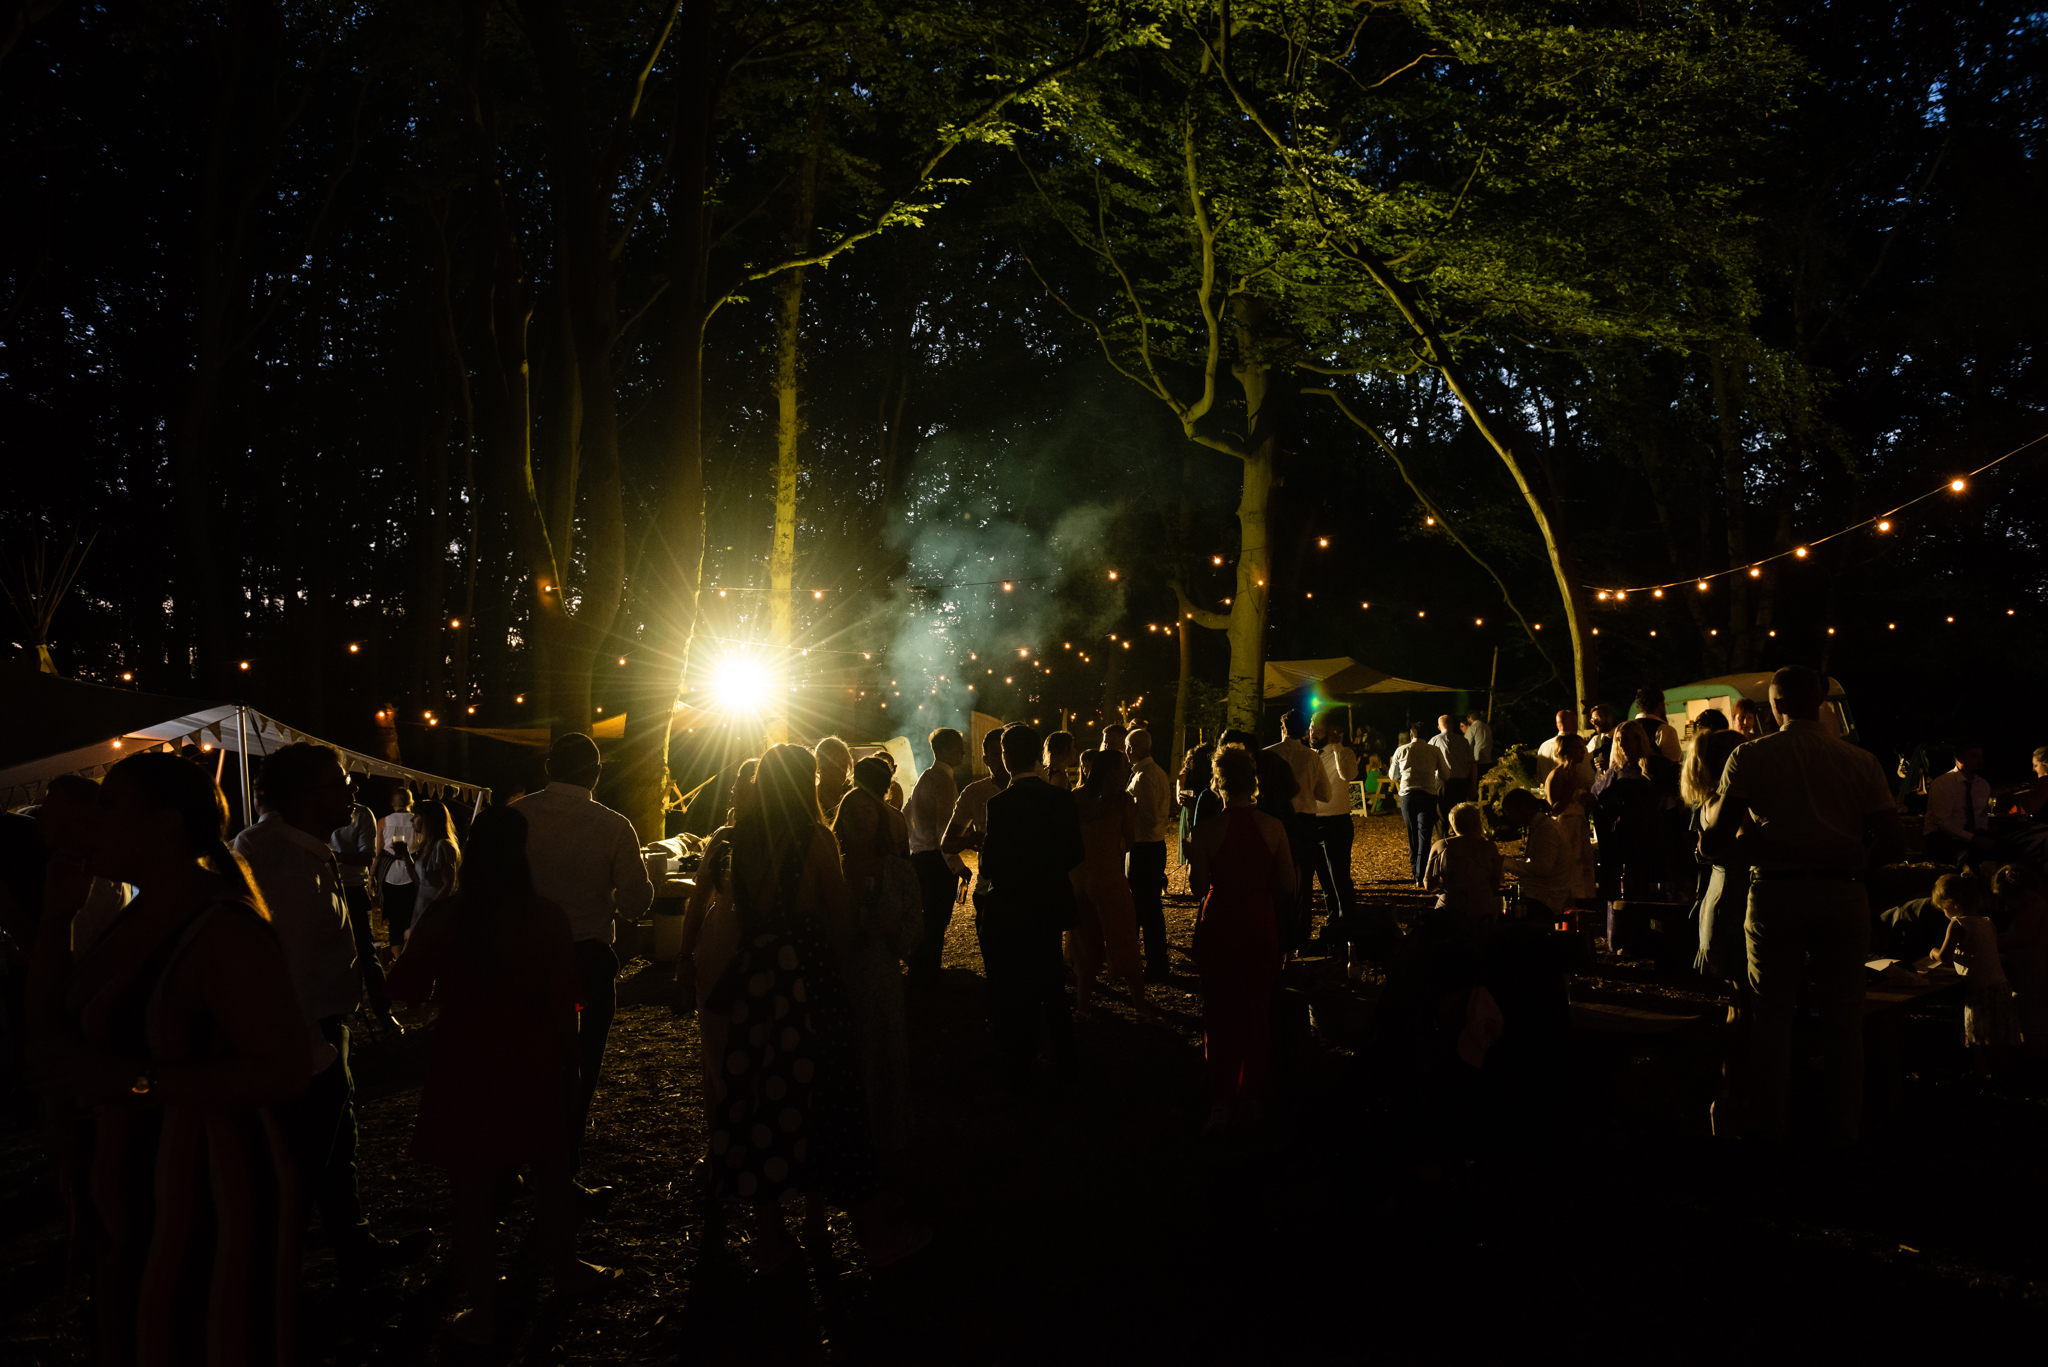 The party continues into the night at Lila's Wood